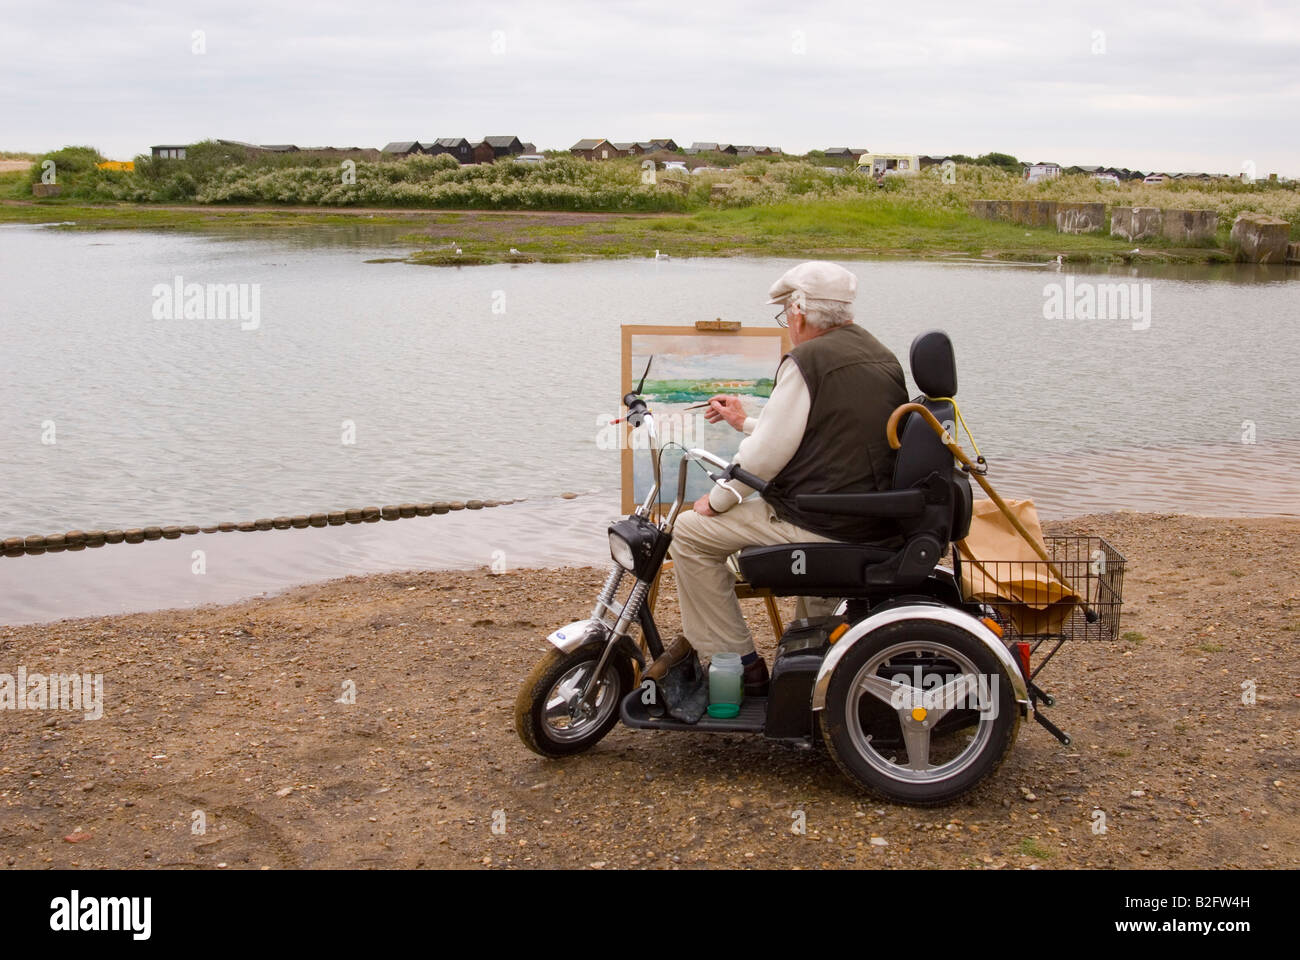 An elderly man on a mobility scooter  Painting A Landscape At Walberswick,Suffolk,Uk - Stock Image